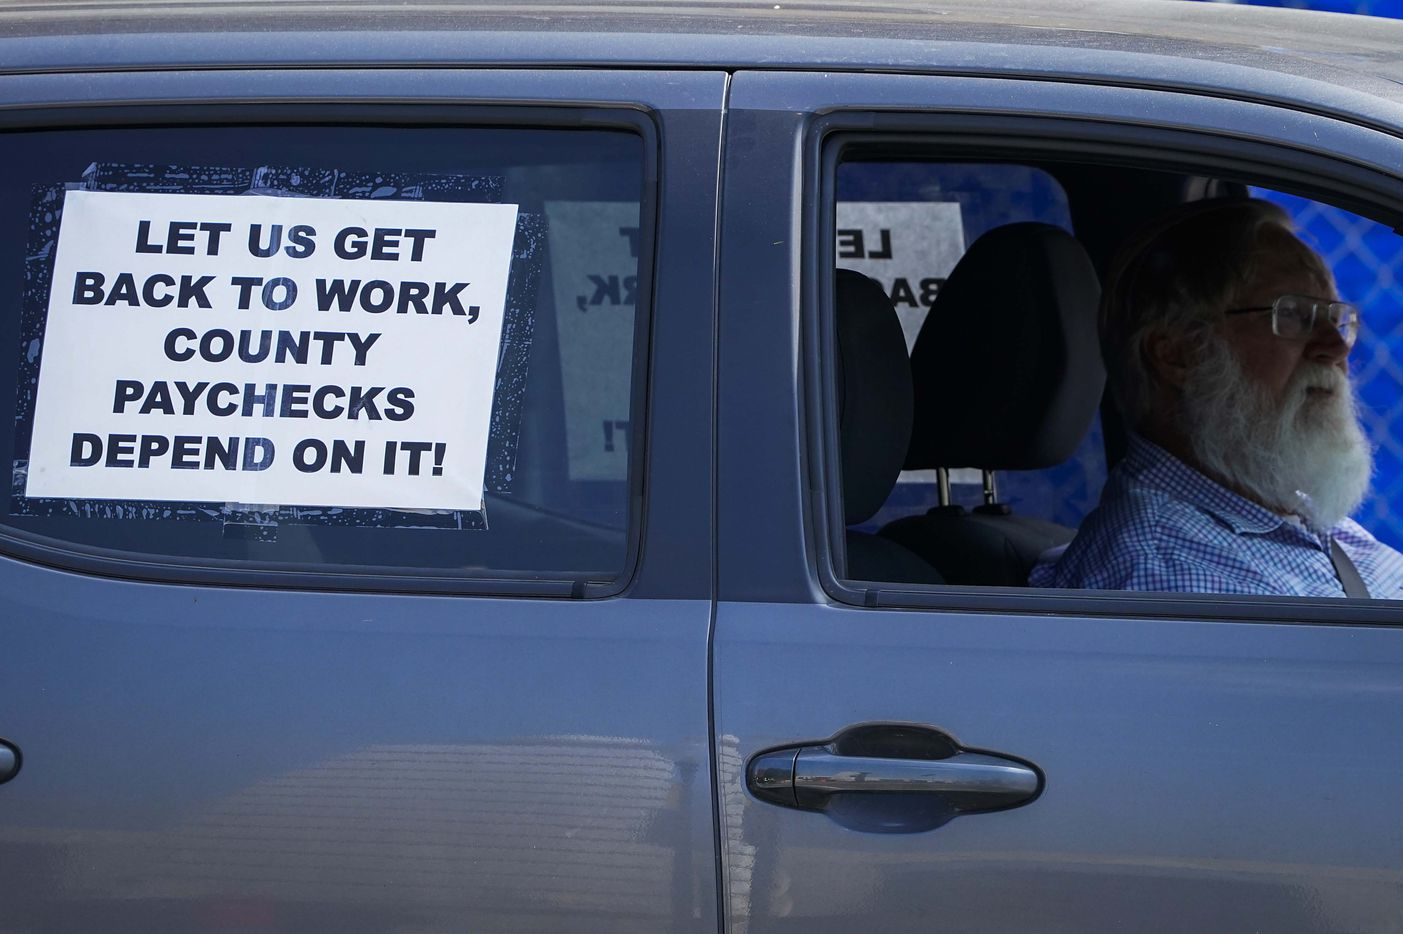 A driver passes by as protesters rally against government stay-at-home orders at Dealey Plaza on Tuesday, April 21, 2020, in Dallas.